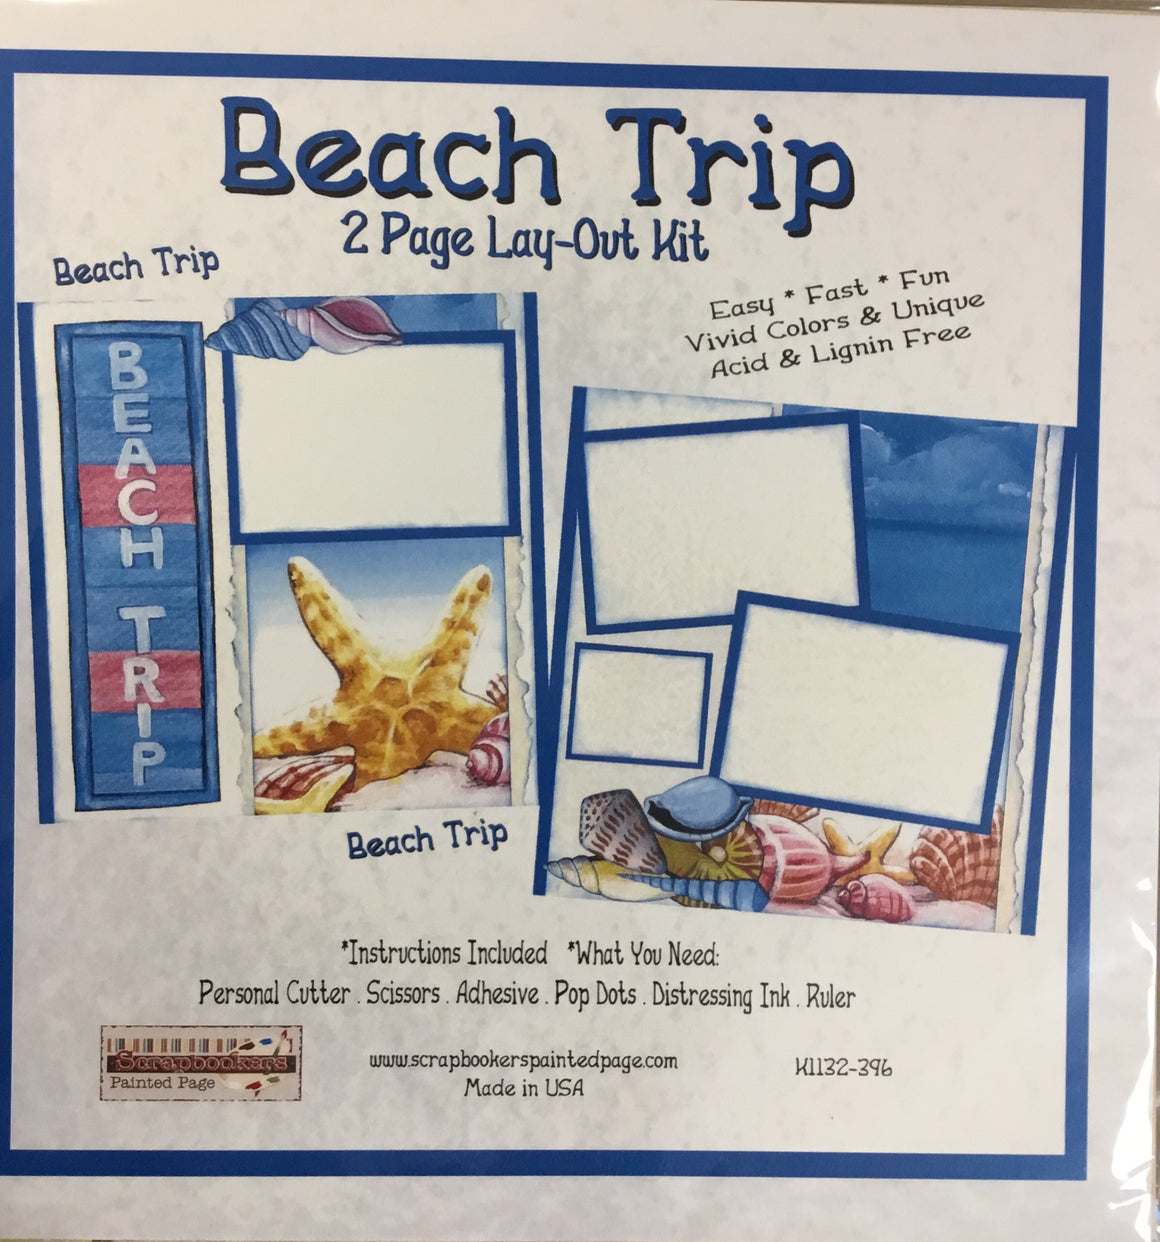 12x12 2 page layout kit Beach Trip